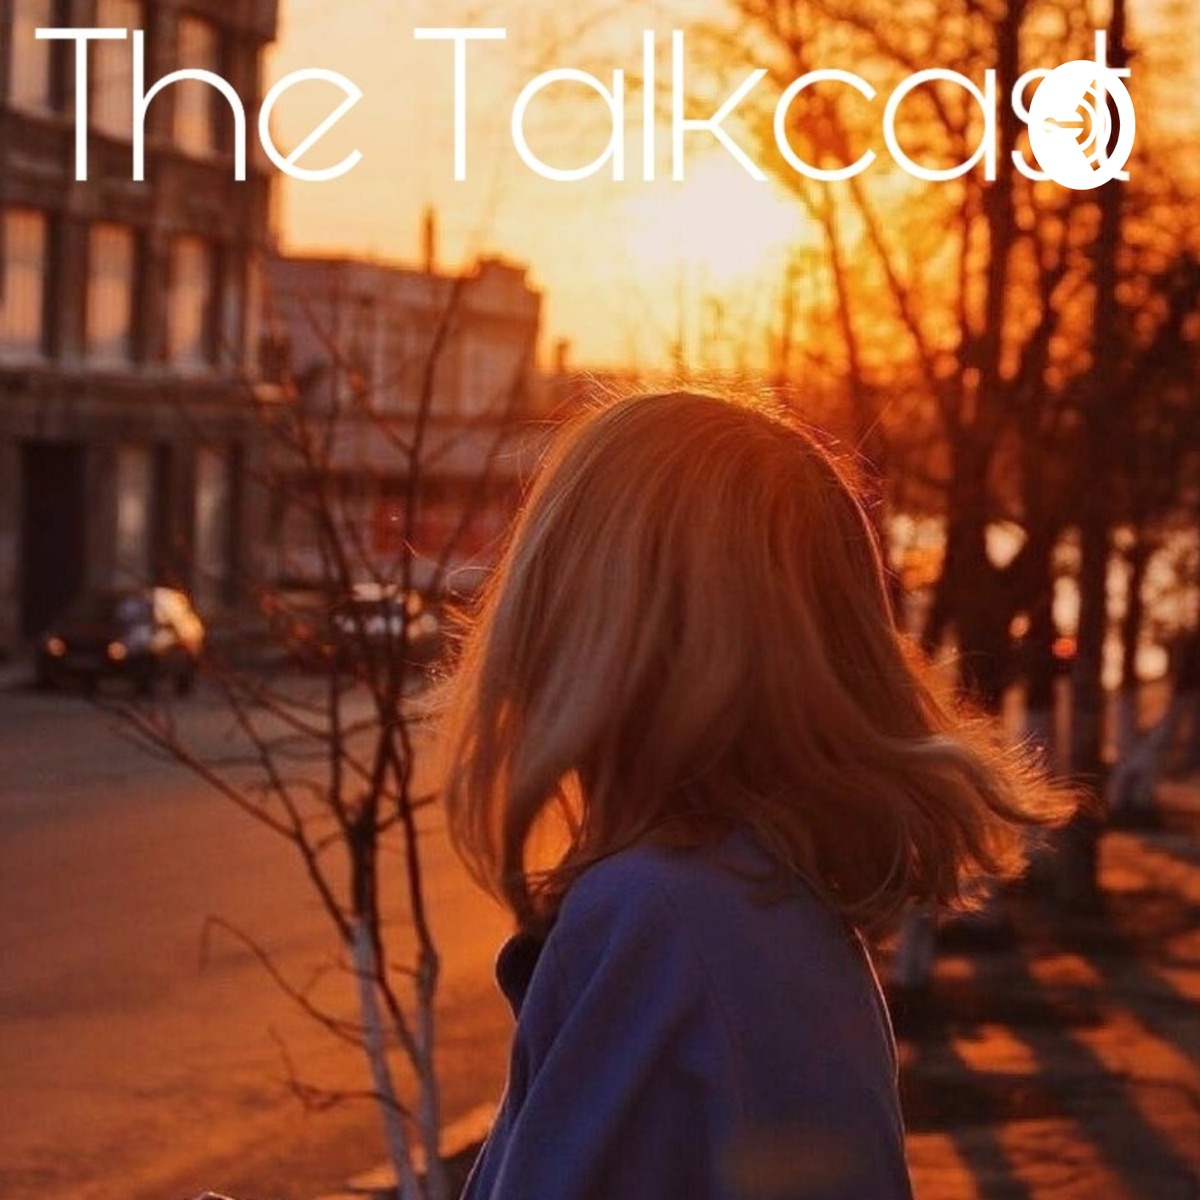 The Talkcast